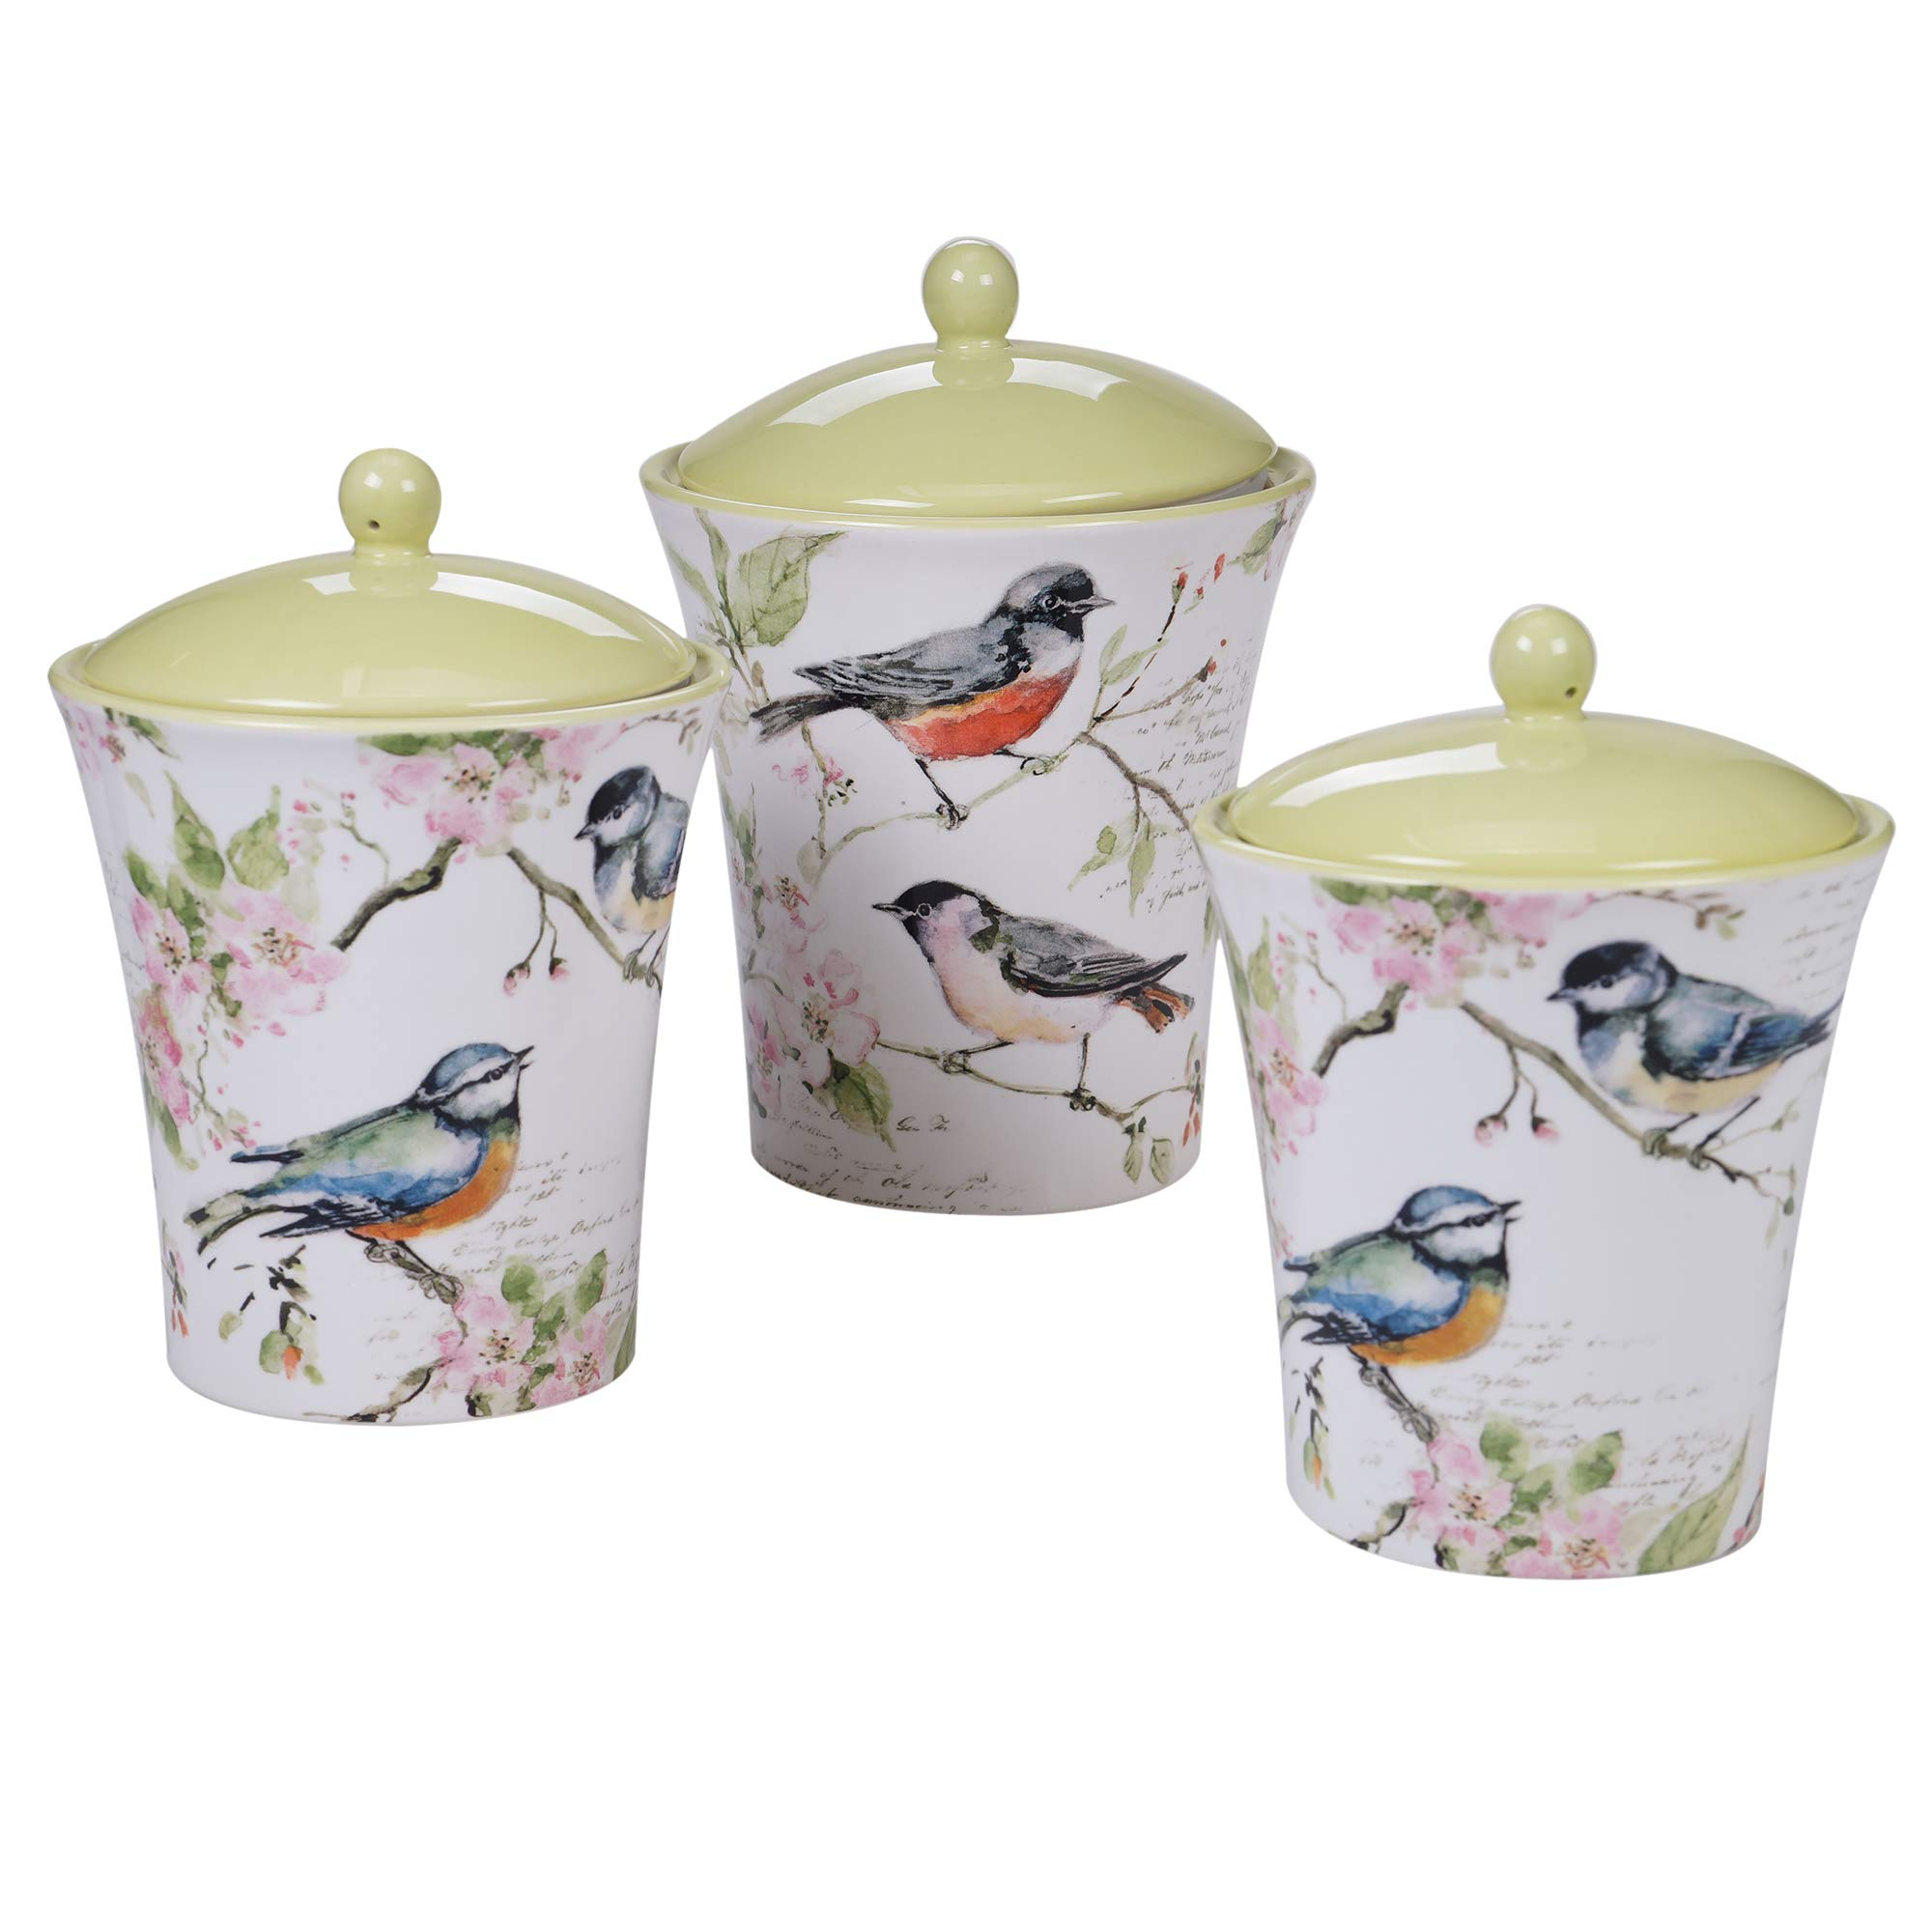 Certified International 26638 Spring Meadows 3pc Canister Set Servware, Serving Acessories, Multicolred by Certified International